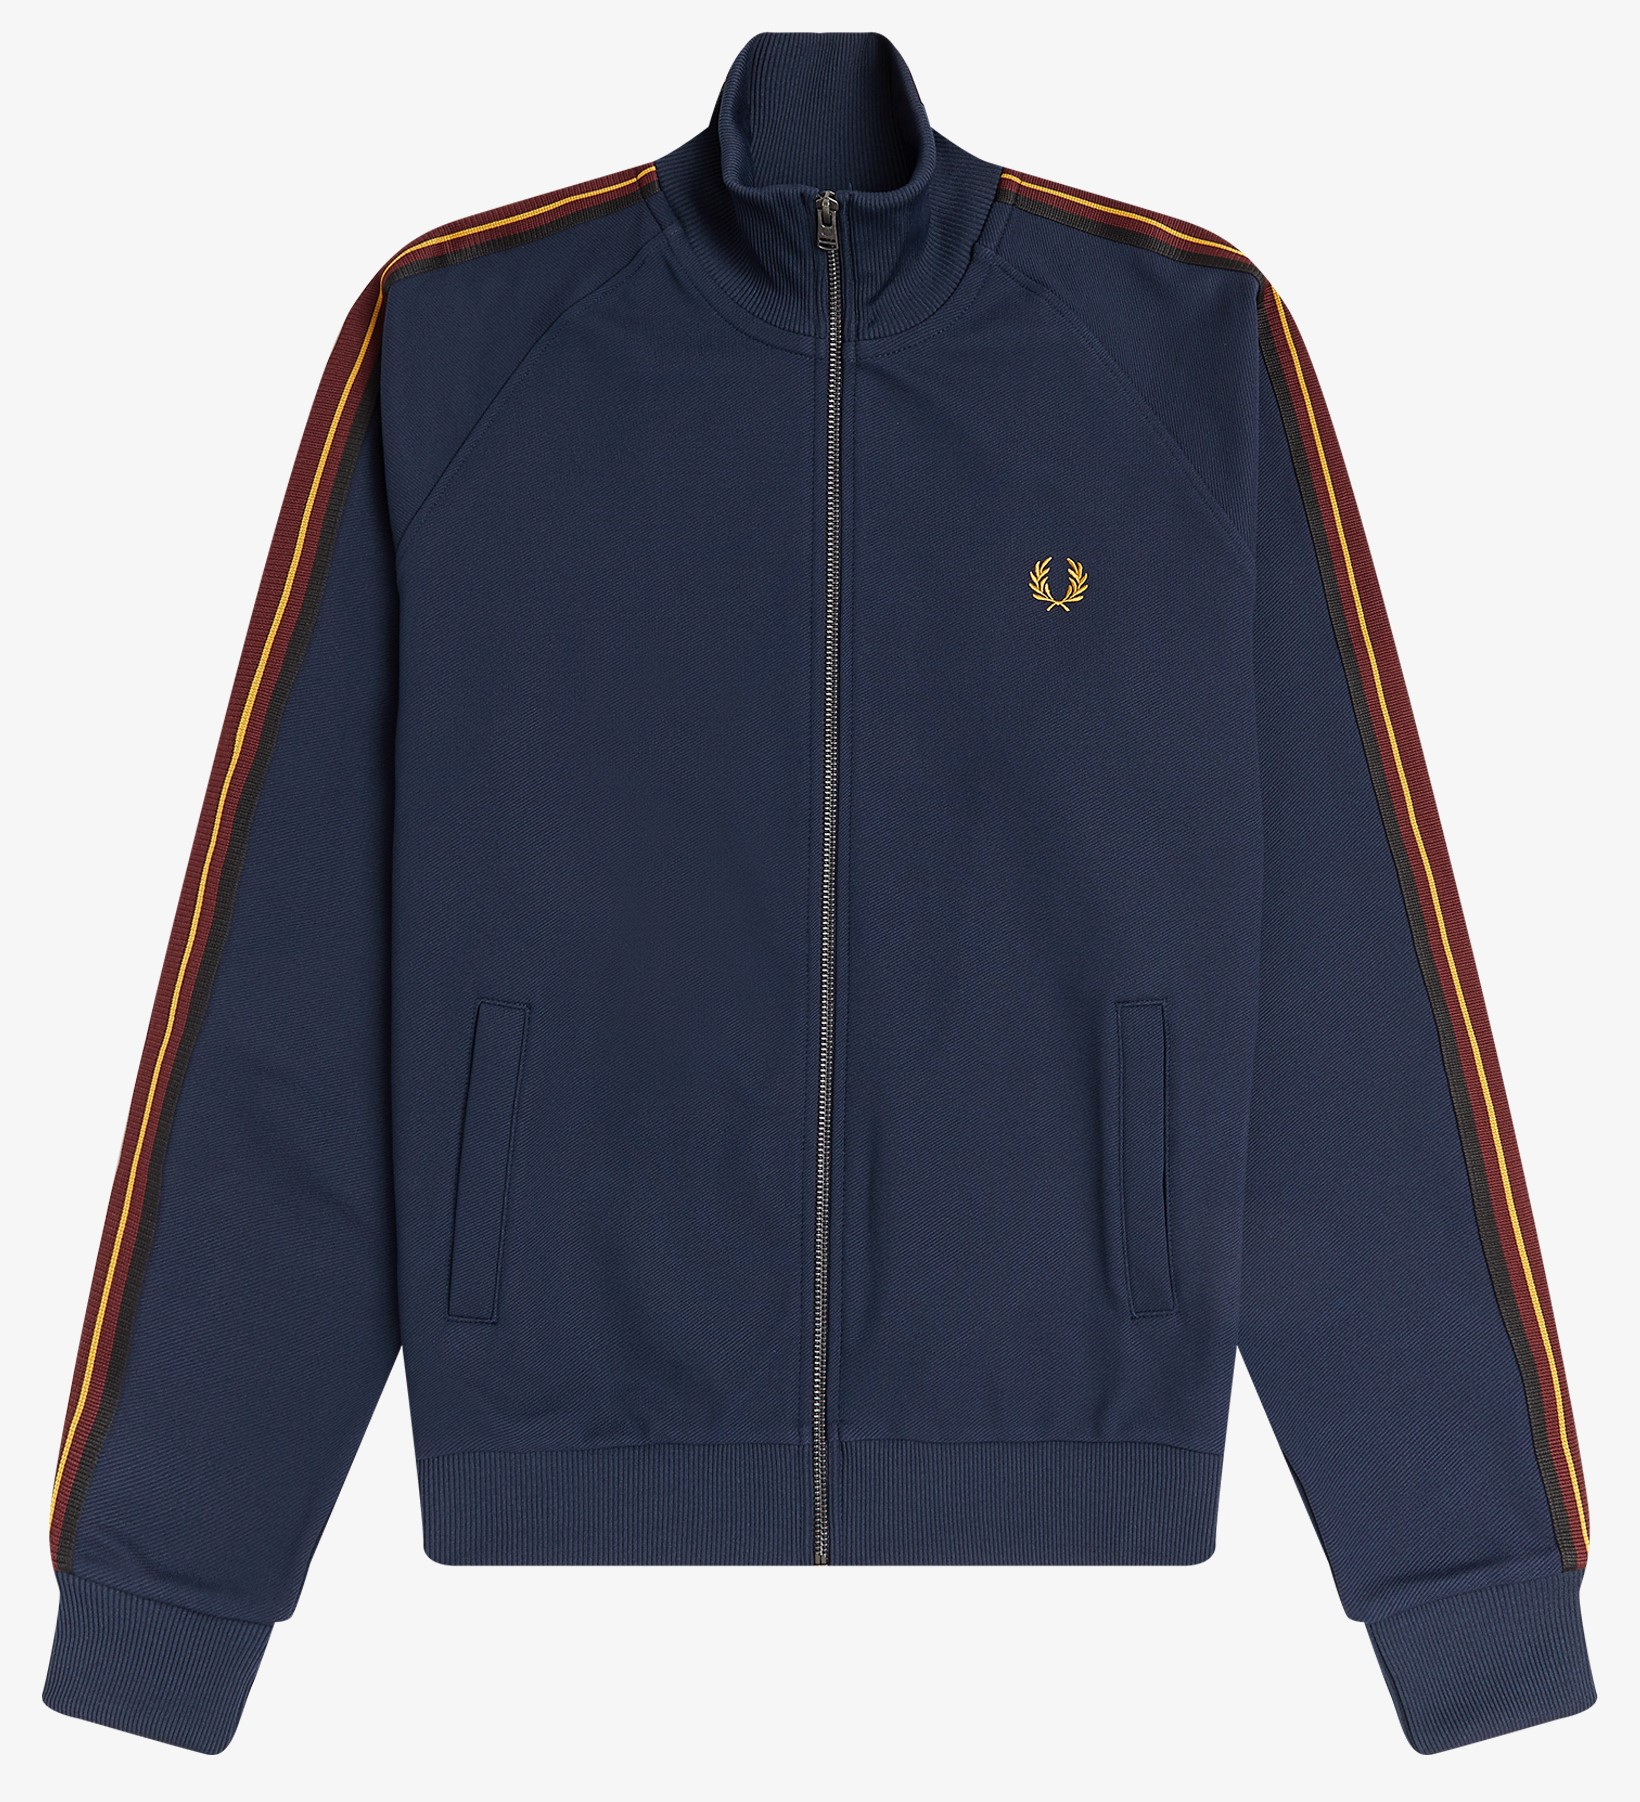 Fred Perry - STRIPED TAPE TRACK JACKET - Dark Carbon